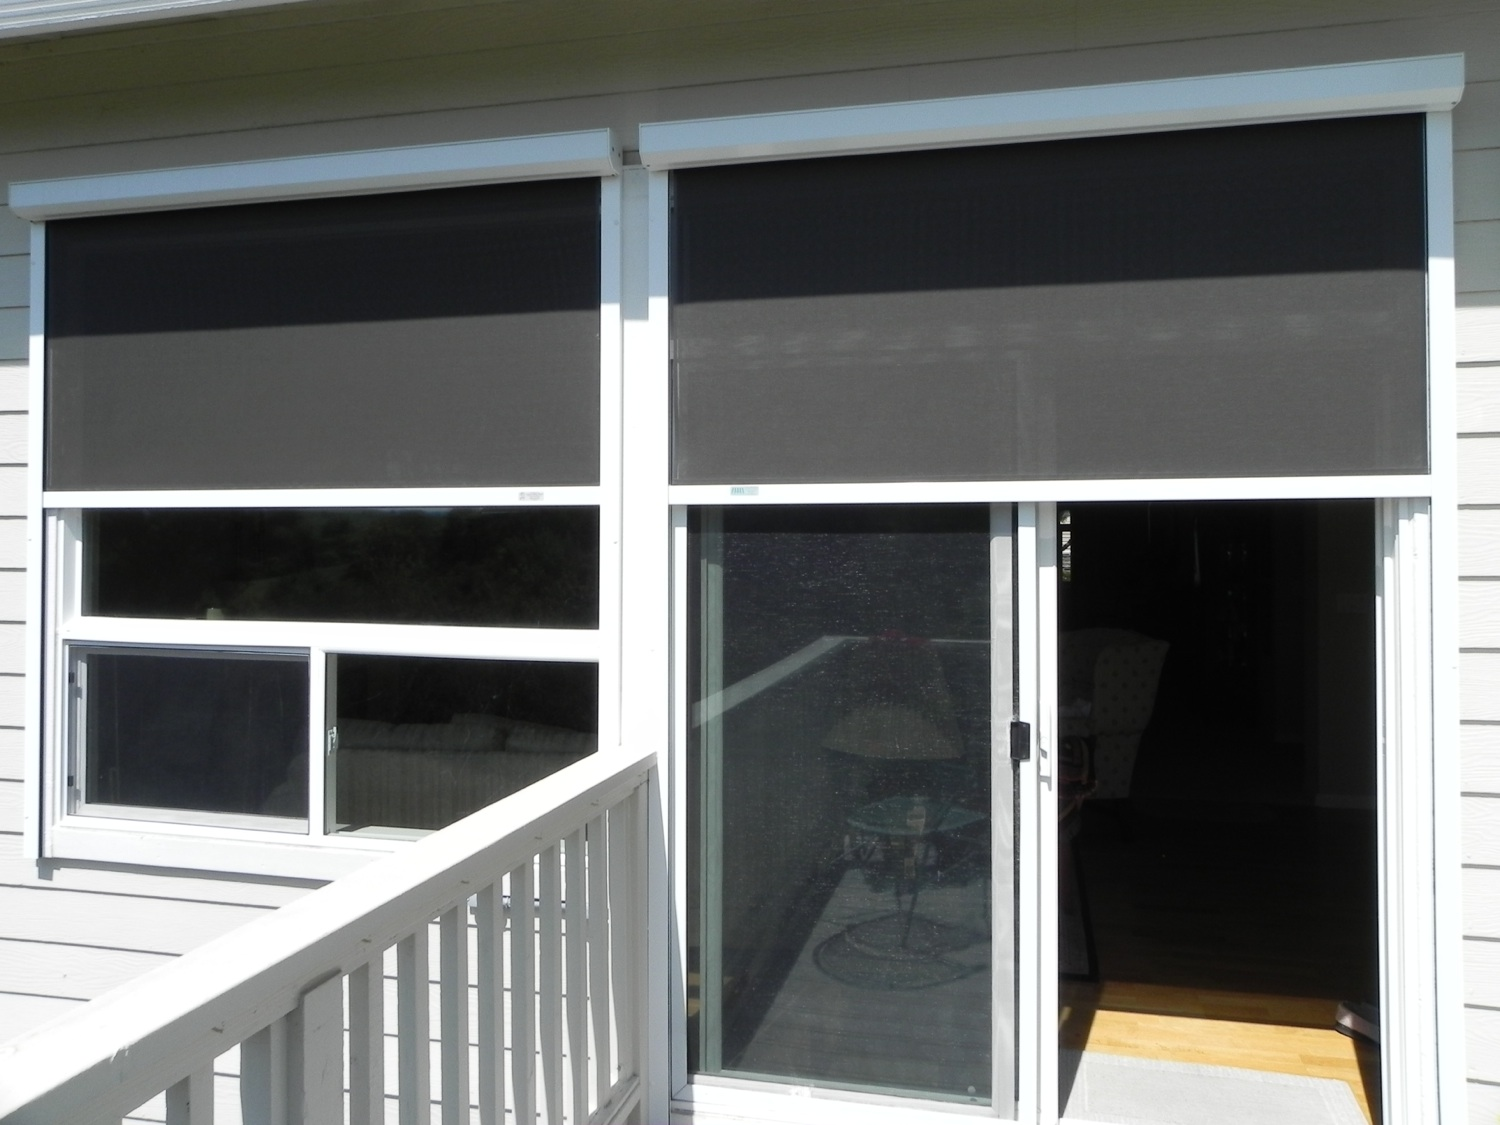 Exterior sun shades for windows - Solar Screens Windows